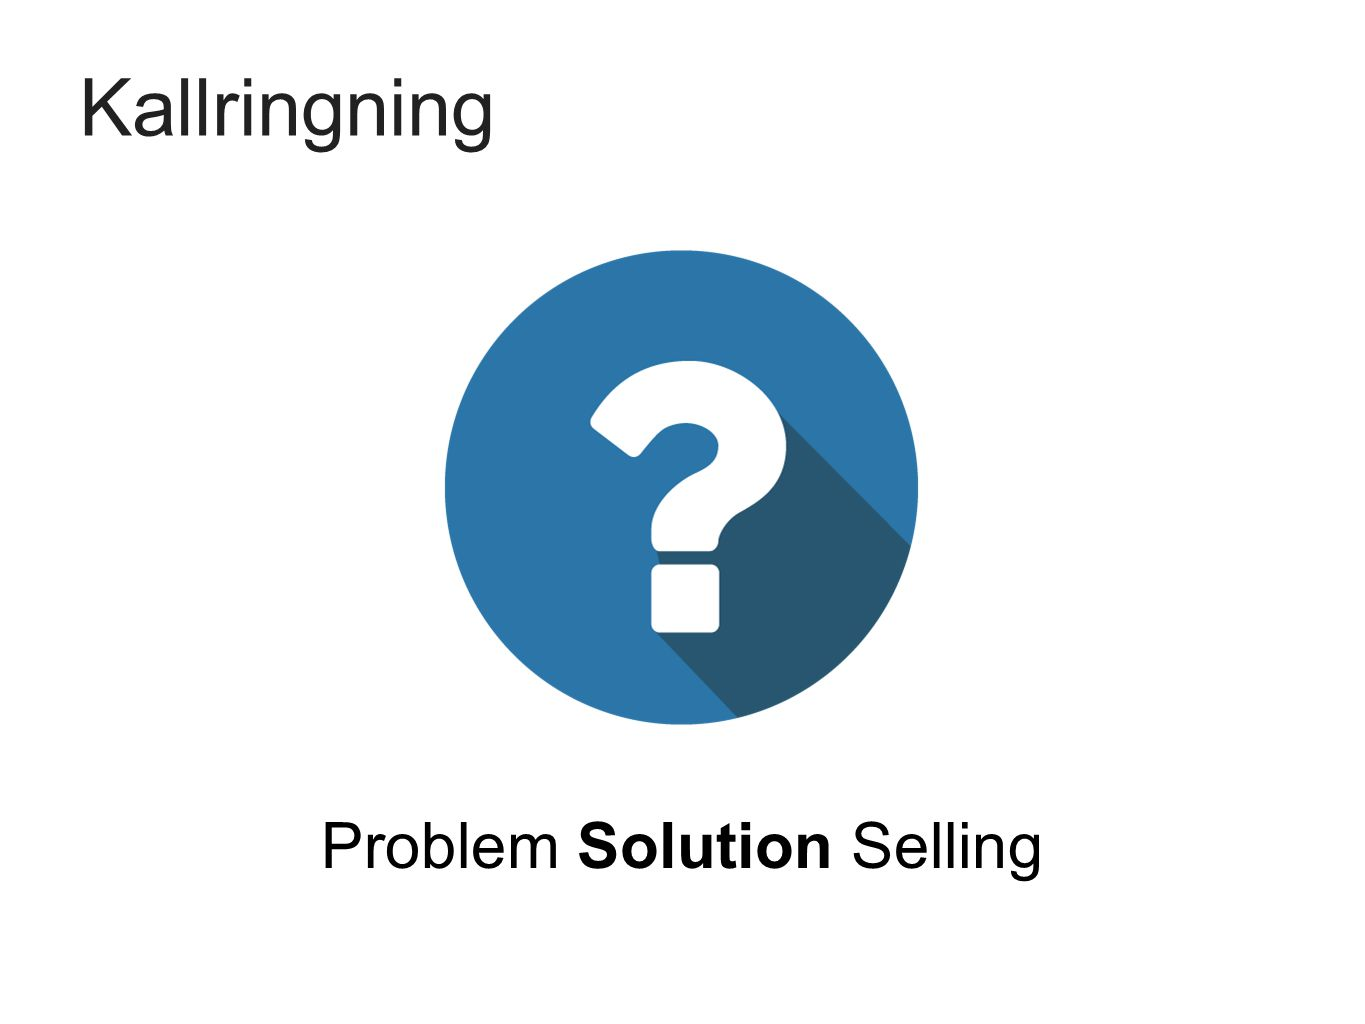 Kallringning Problem Solution Selling